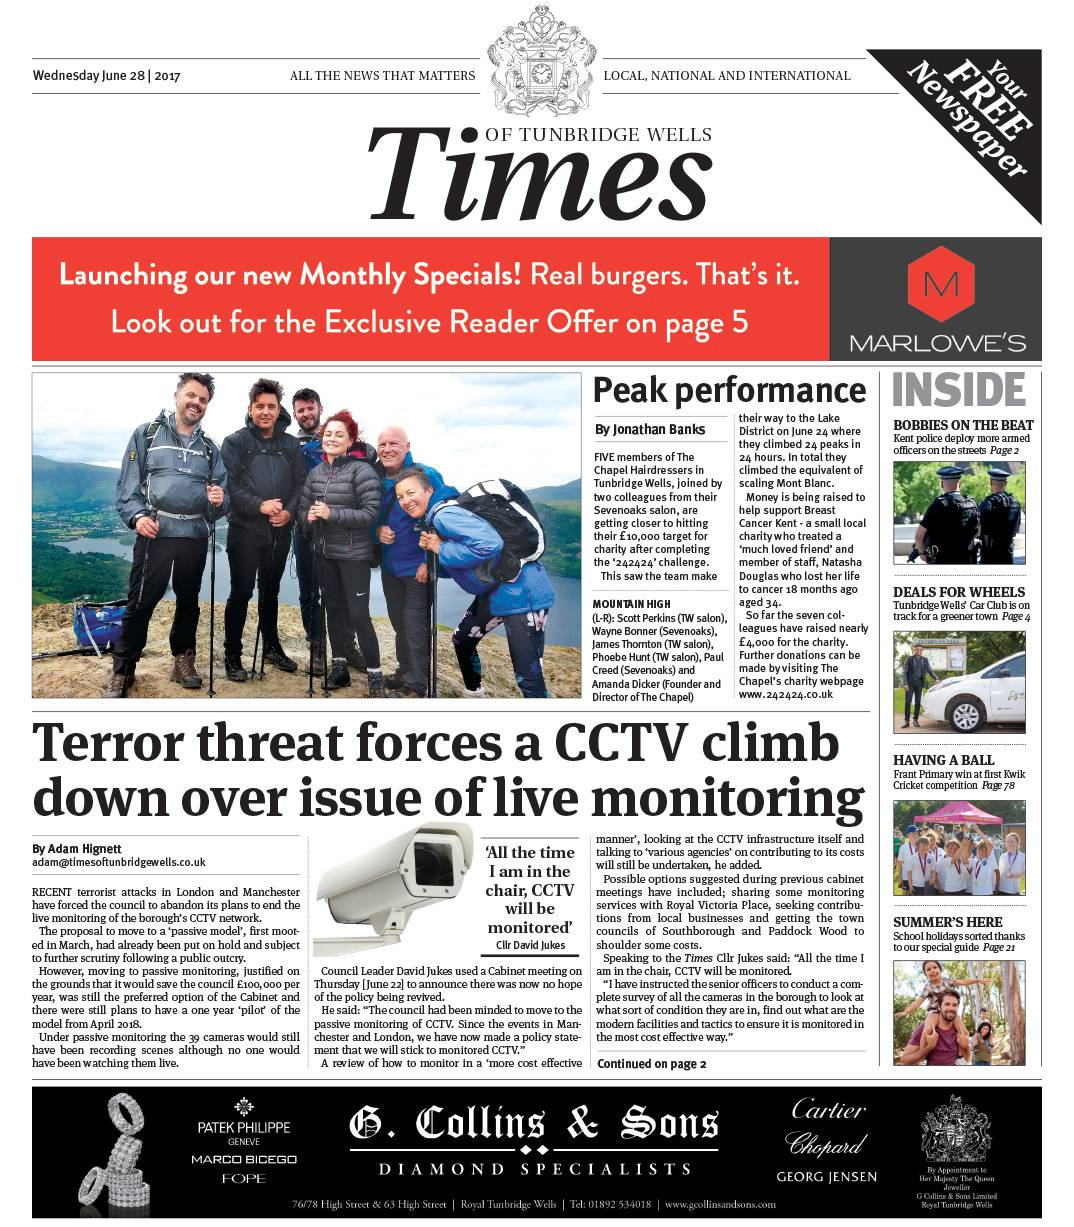 Read the Times of Tunbridge Wells 28th June 2017